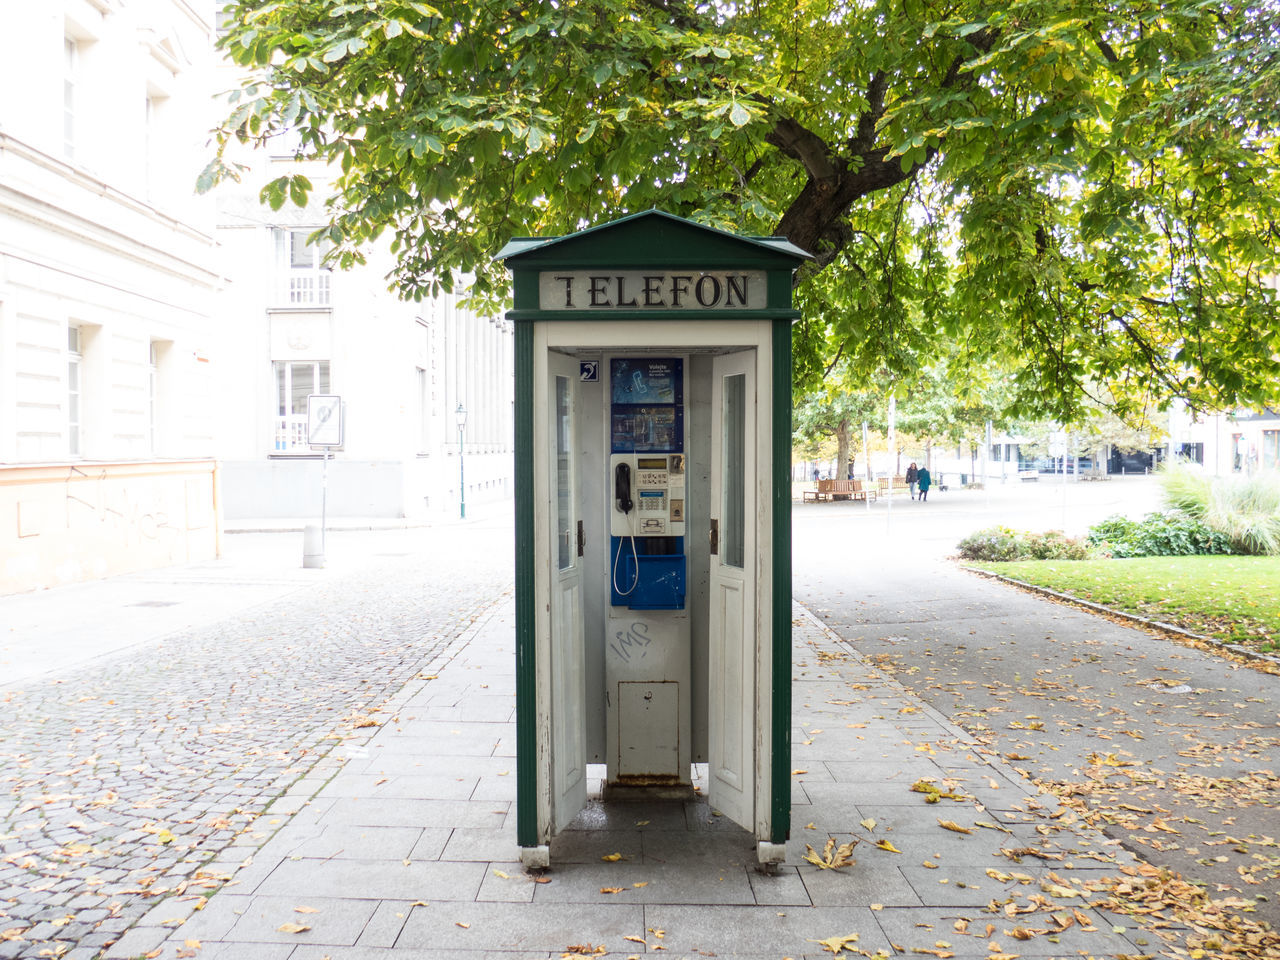 communication, built structure, architecture, tree, telephone booth, building exterior, pay phone, day, outdoors, no people, street